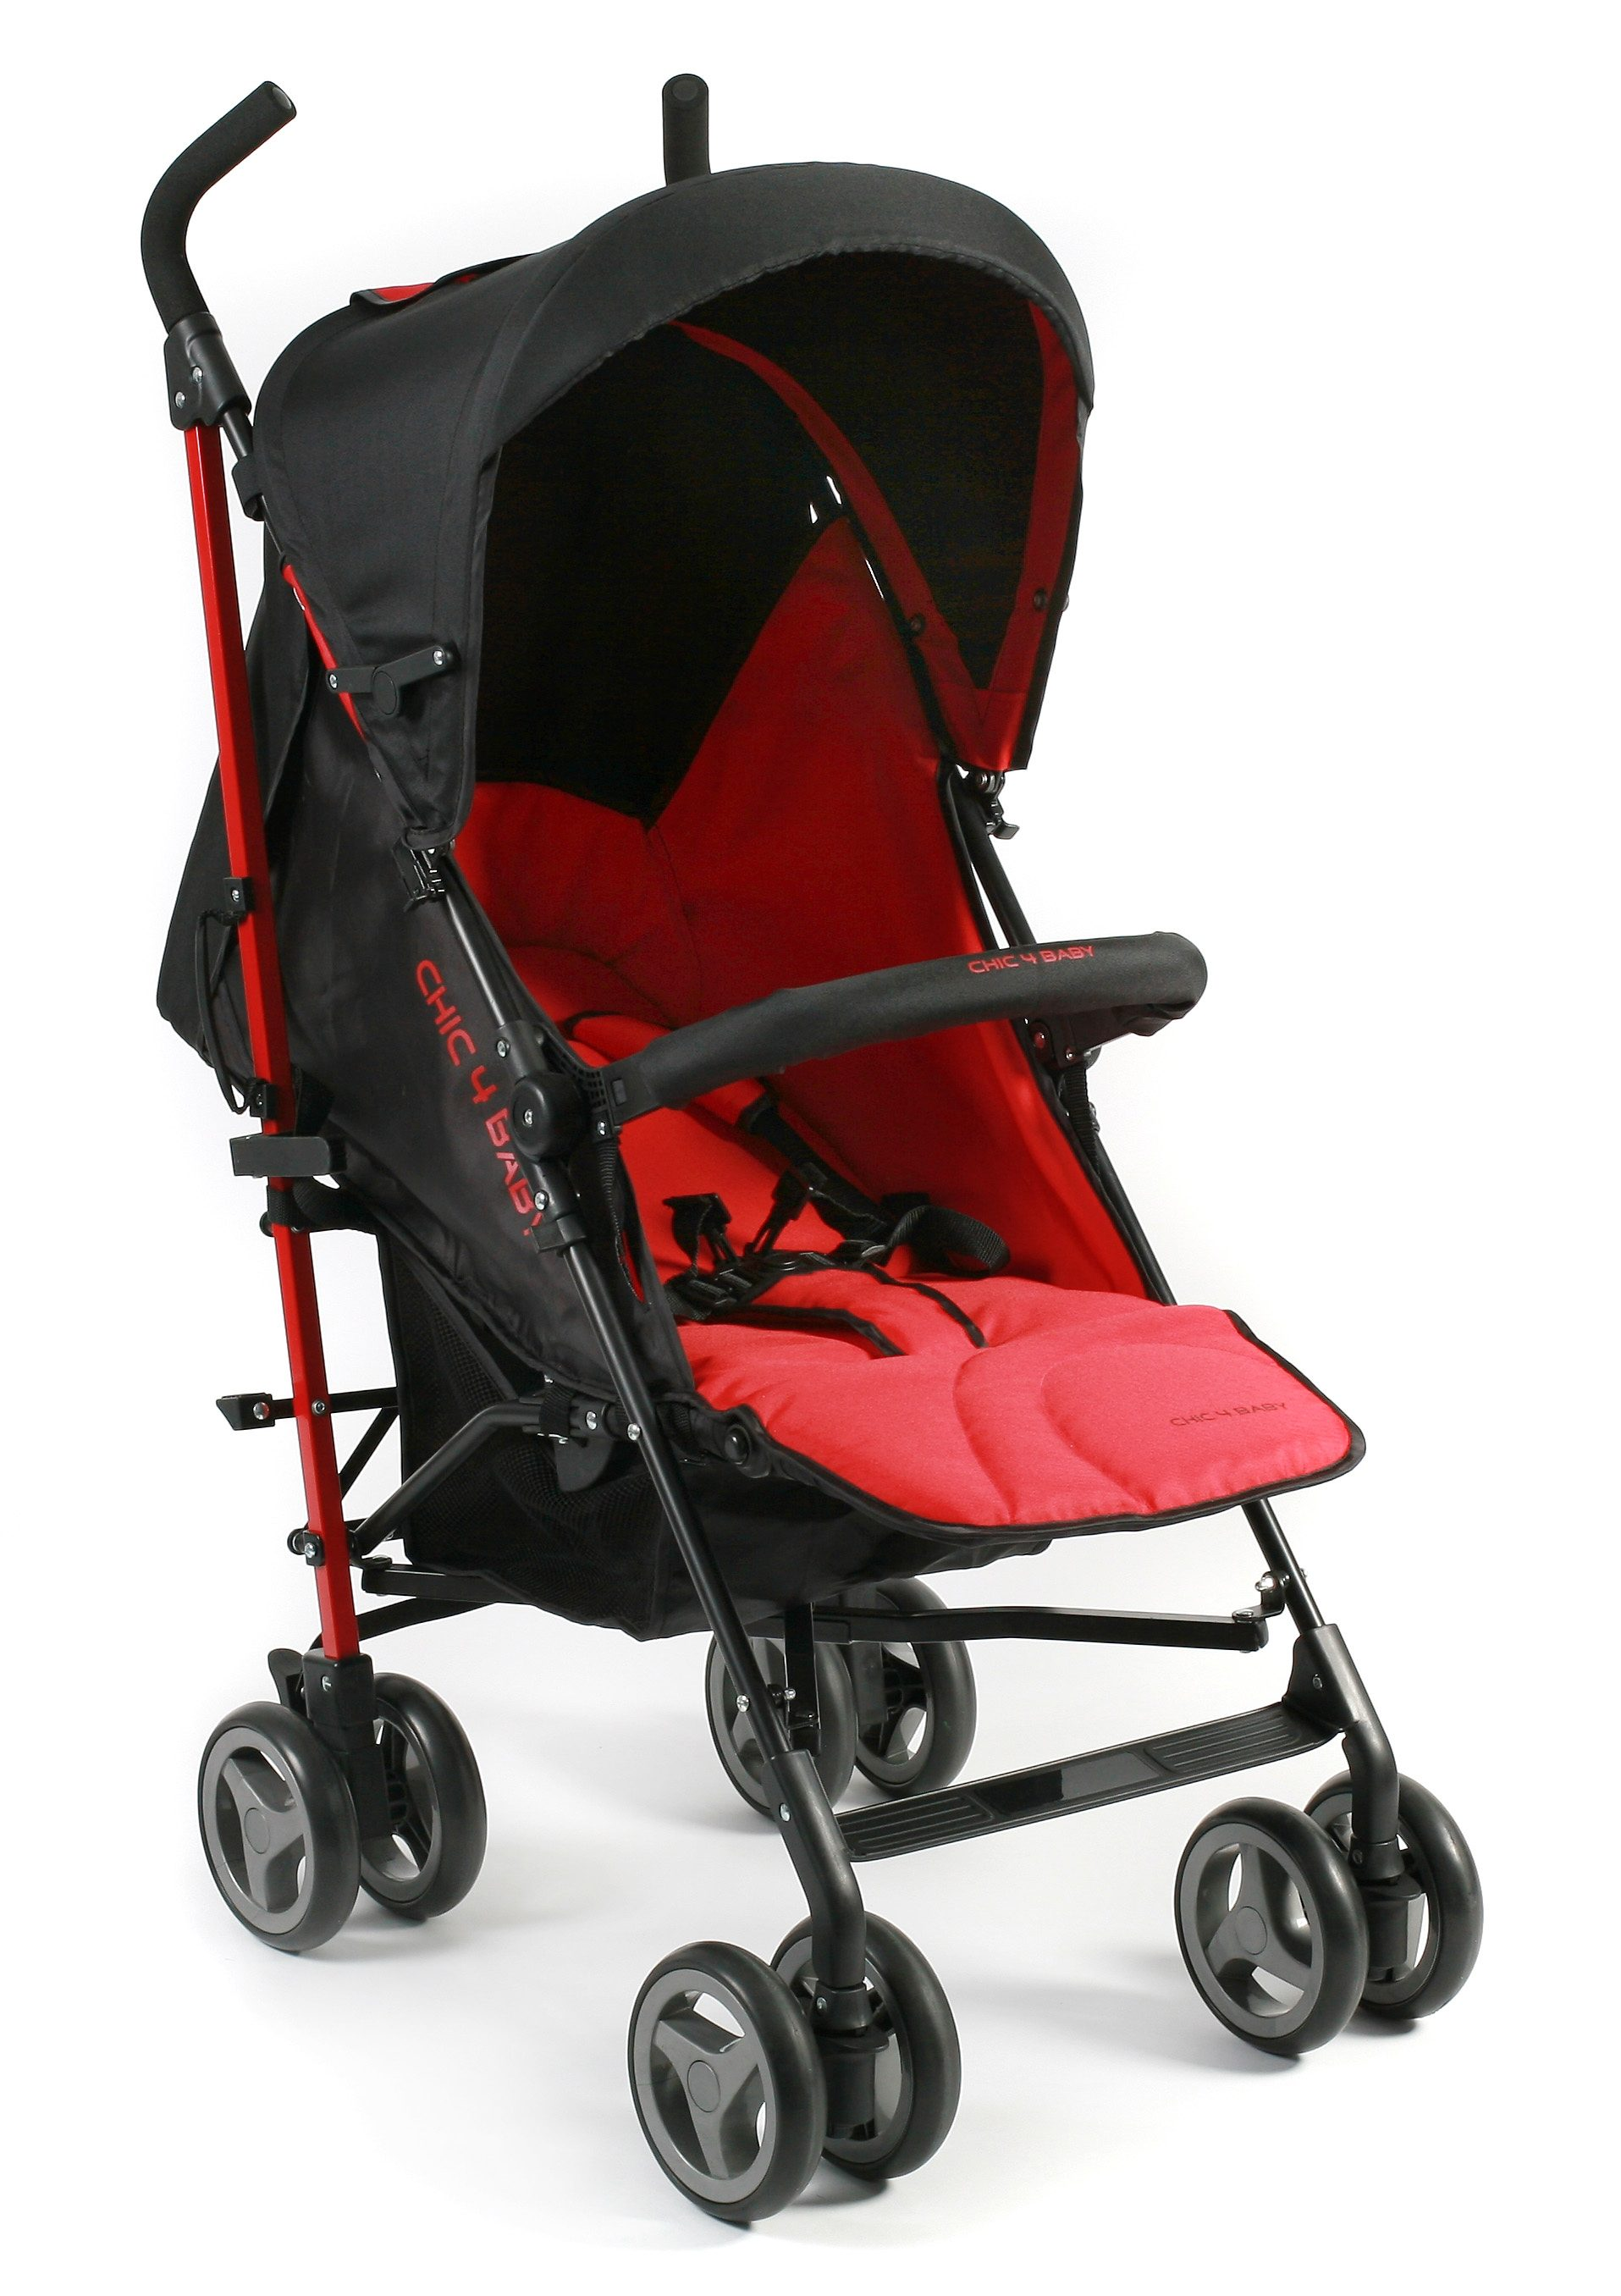 CHIC4BABY, Kinder-Buggy »Lido, rot«